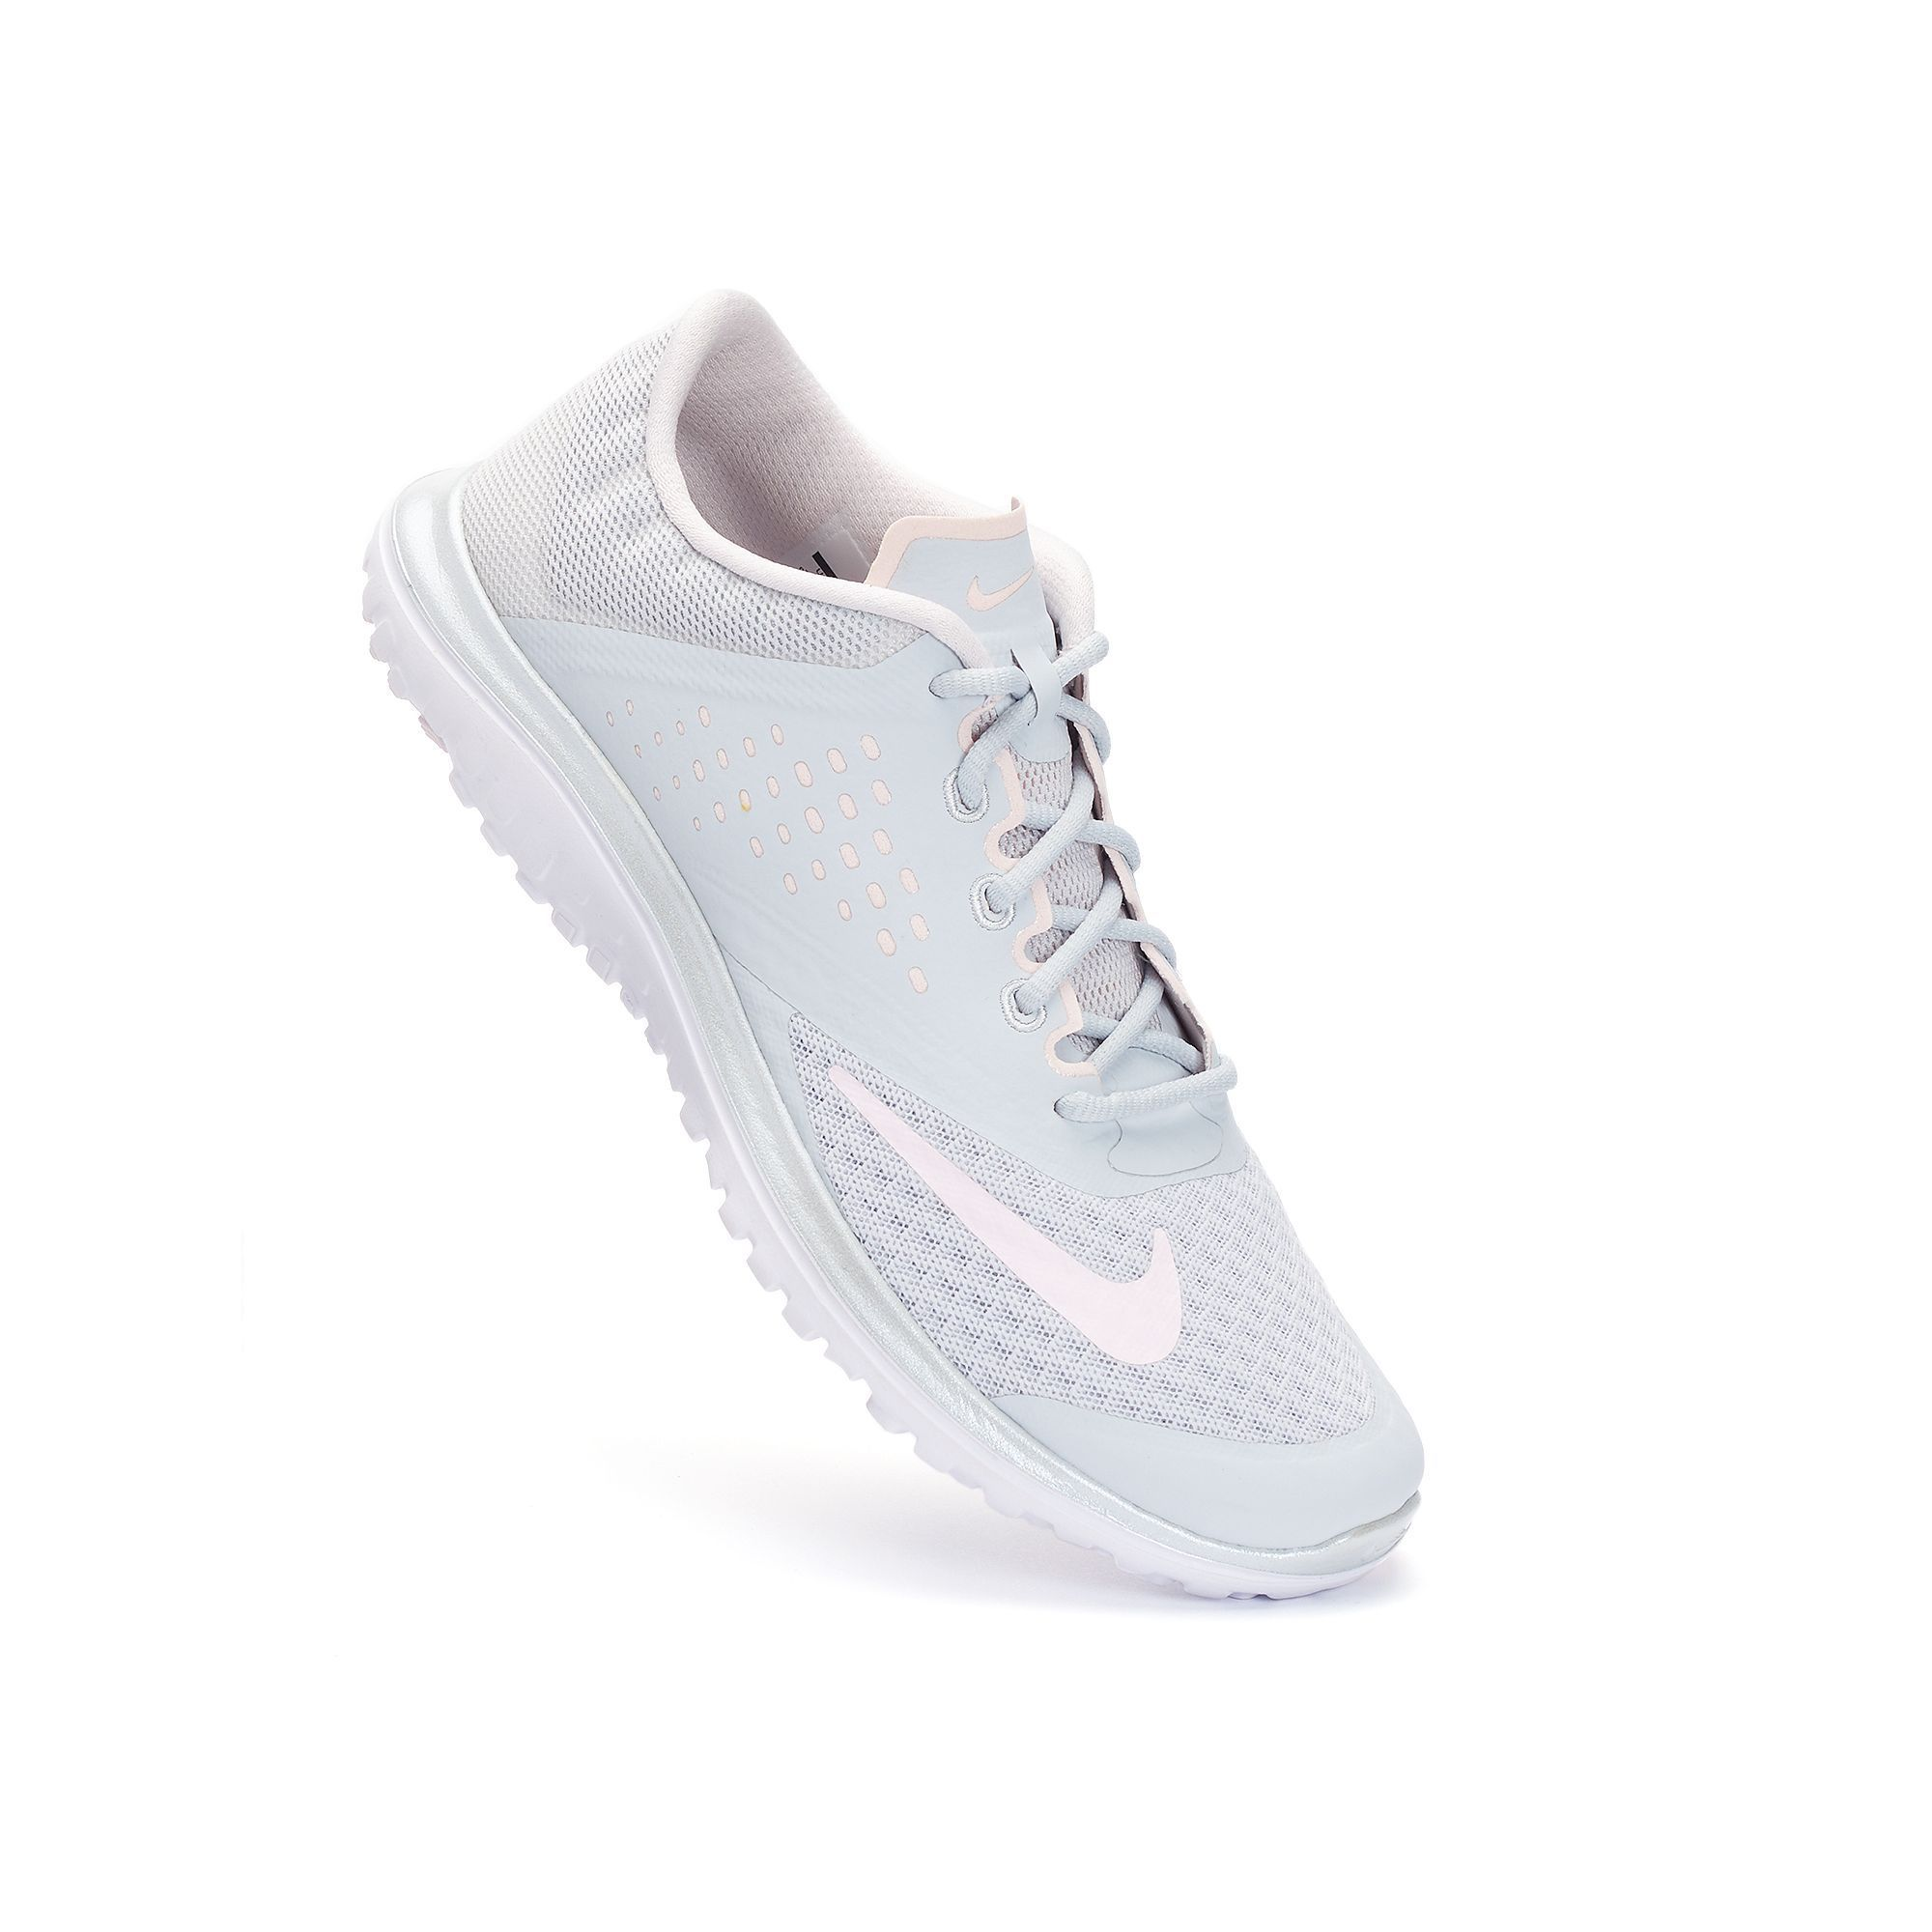 78af17f925dc Nike FS Lite Run 2 Premium Women s Running Shoes